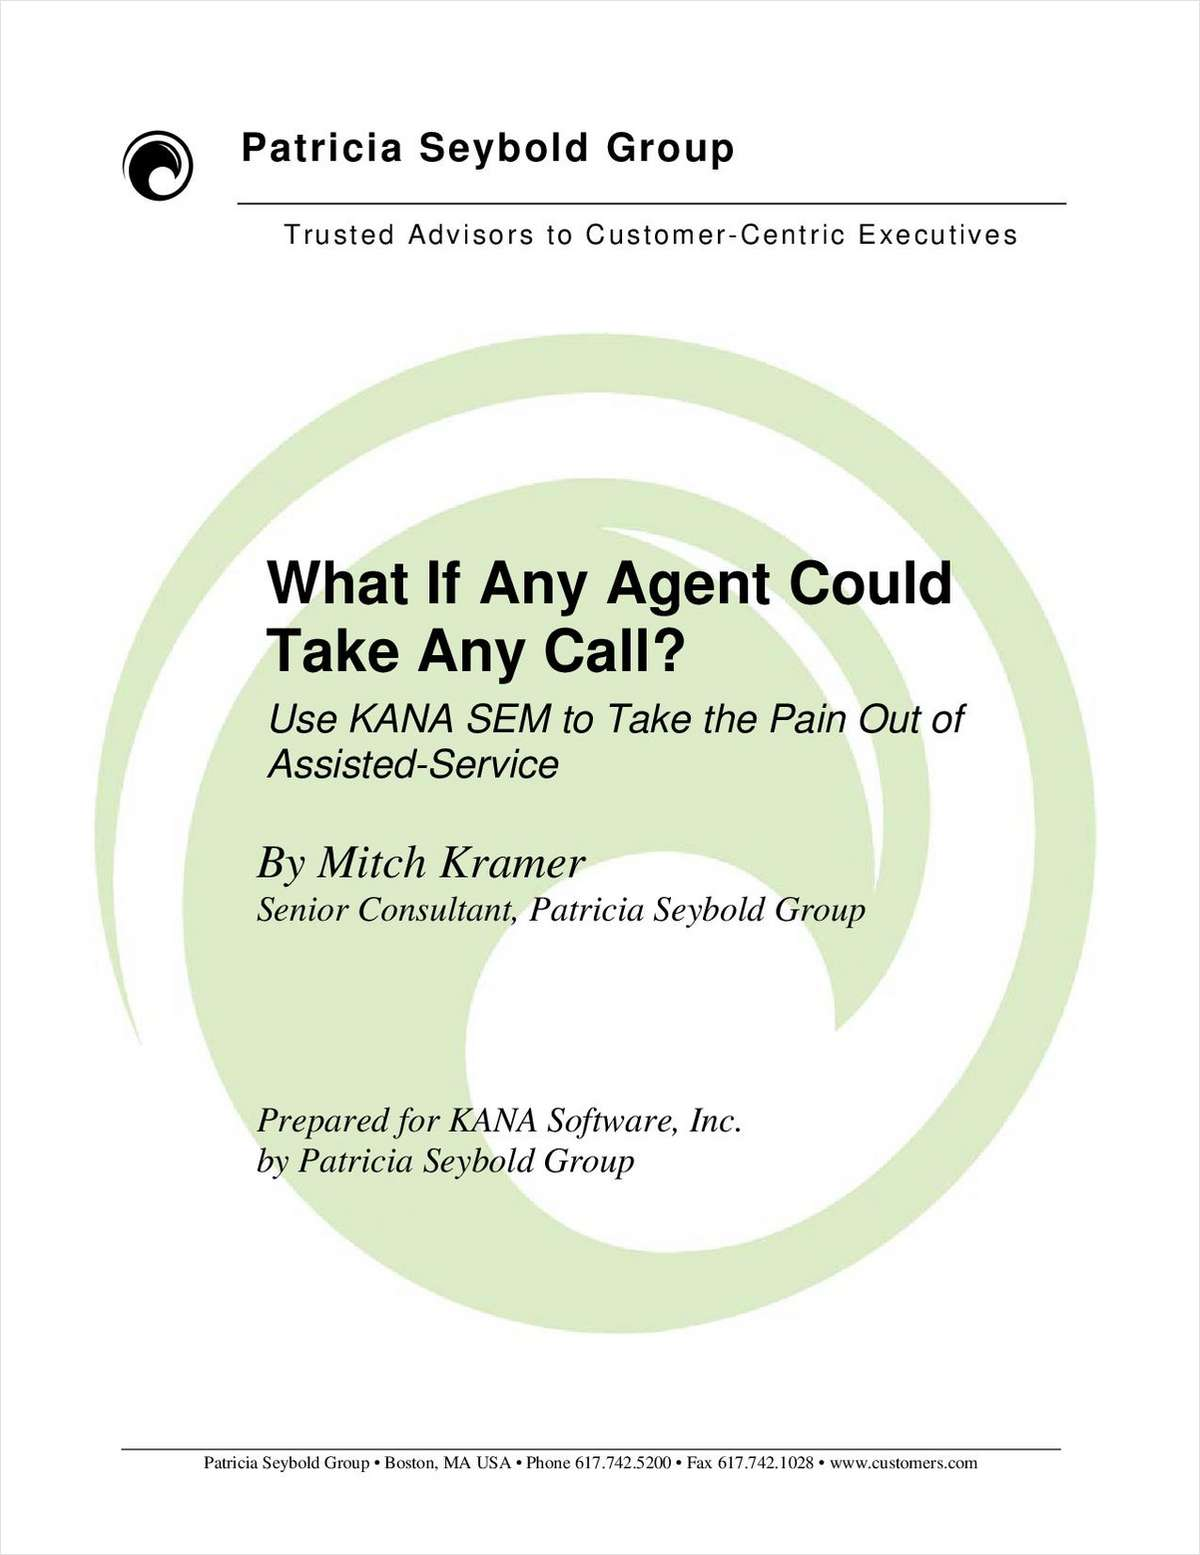 Use KANA SEM to Take the Pain Out of Assisted-Service